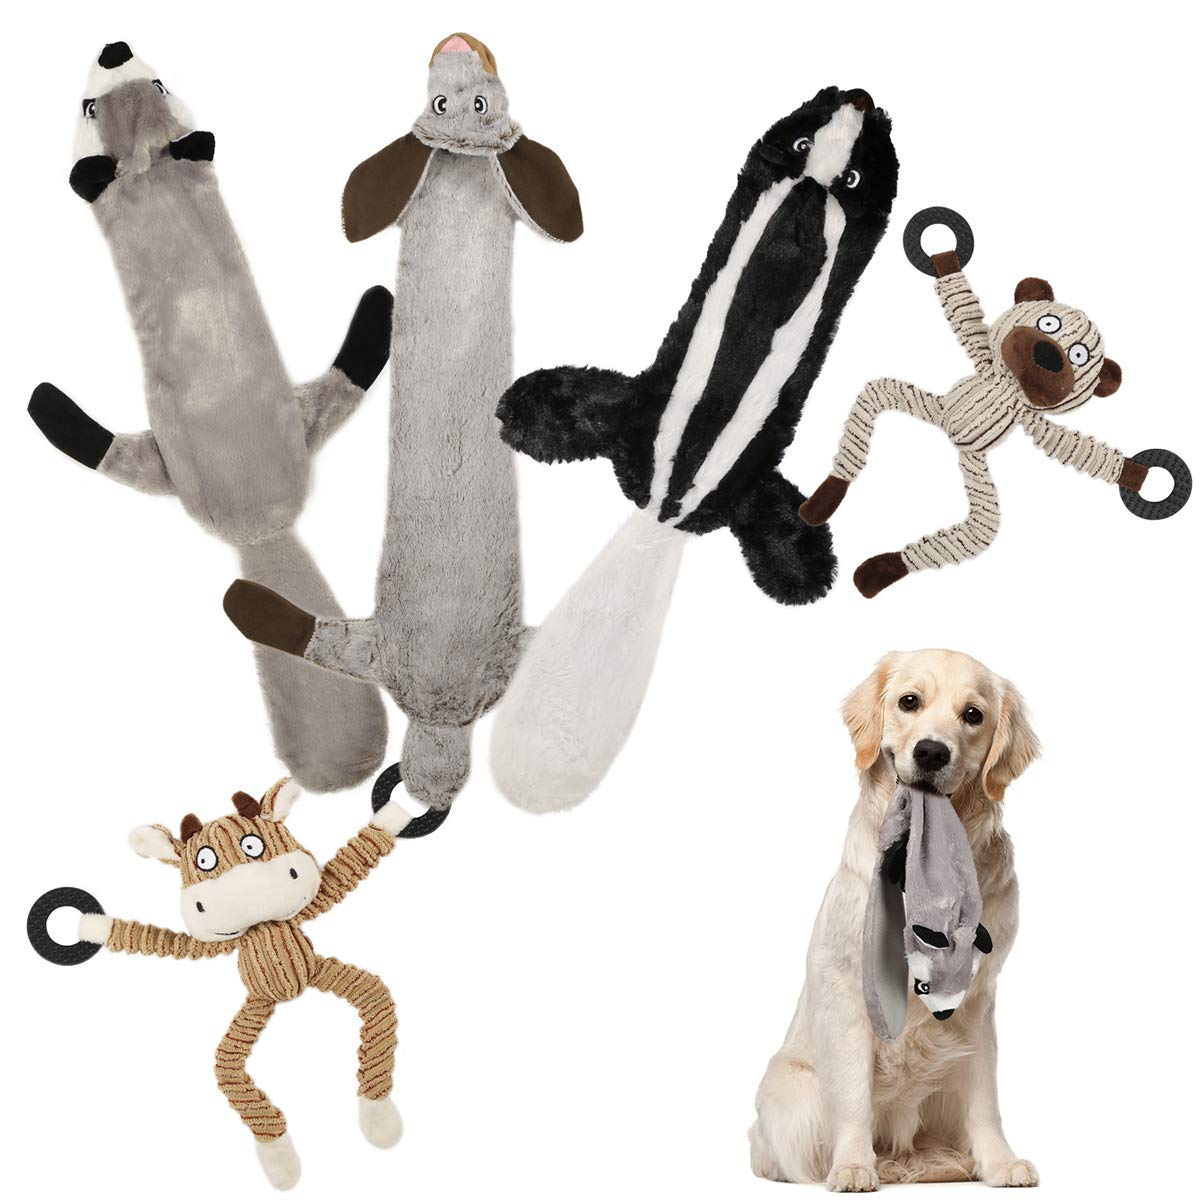 WZPB 5 Pack of Dog Toys,Three No Stuffing Toy and Two